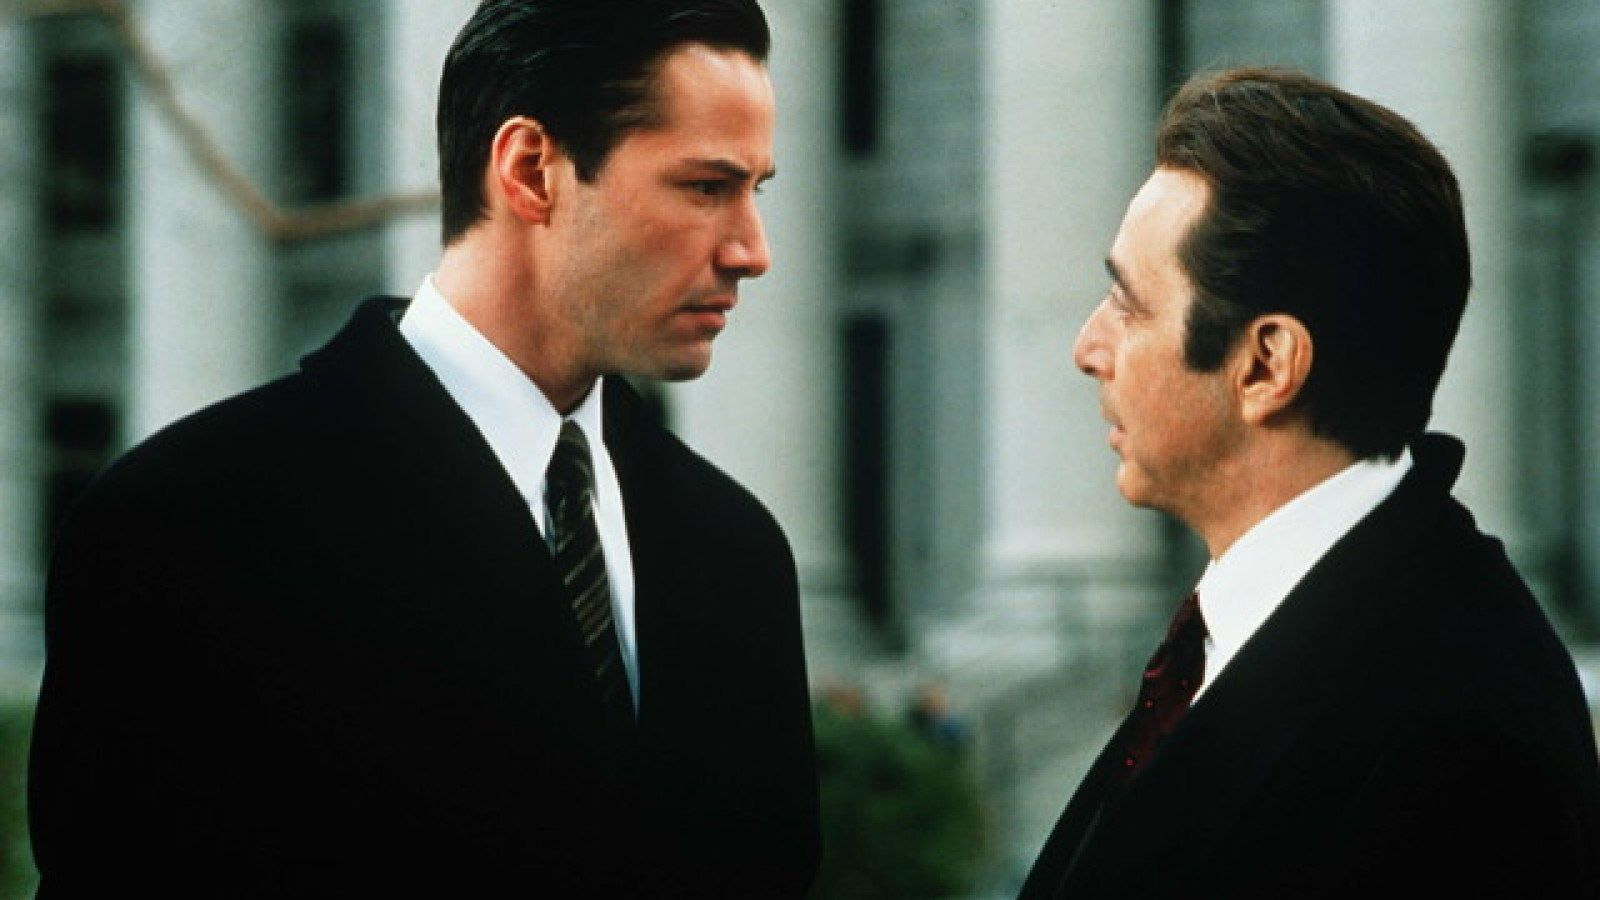 Title: DEVIL'S ADVOCATE, THE (1997) � Pers: REEVES, KEANU / PACINO, AL � Year: 1997 � Dir: HACKFORD, TAYLOR � Ref: DEV083AU � Credit: [ WARNER BROS/MONARCHY / THE KOBAL COLLECTION / HAMILL, BRIAN ]